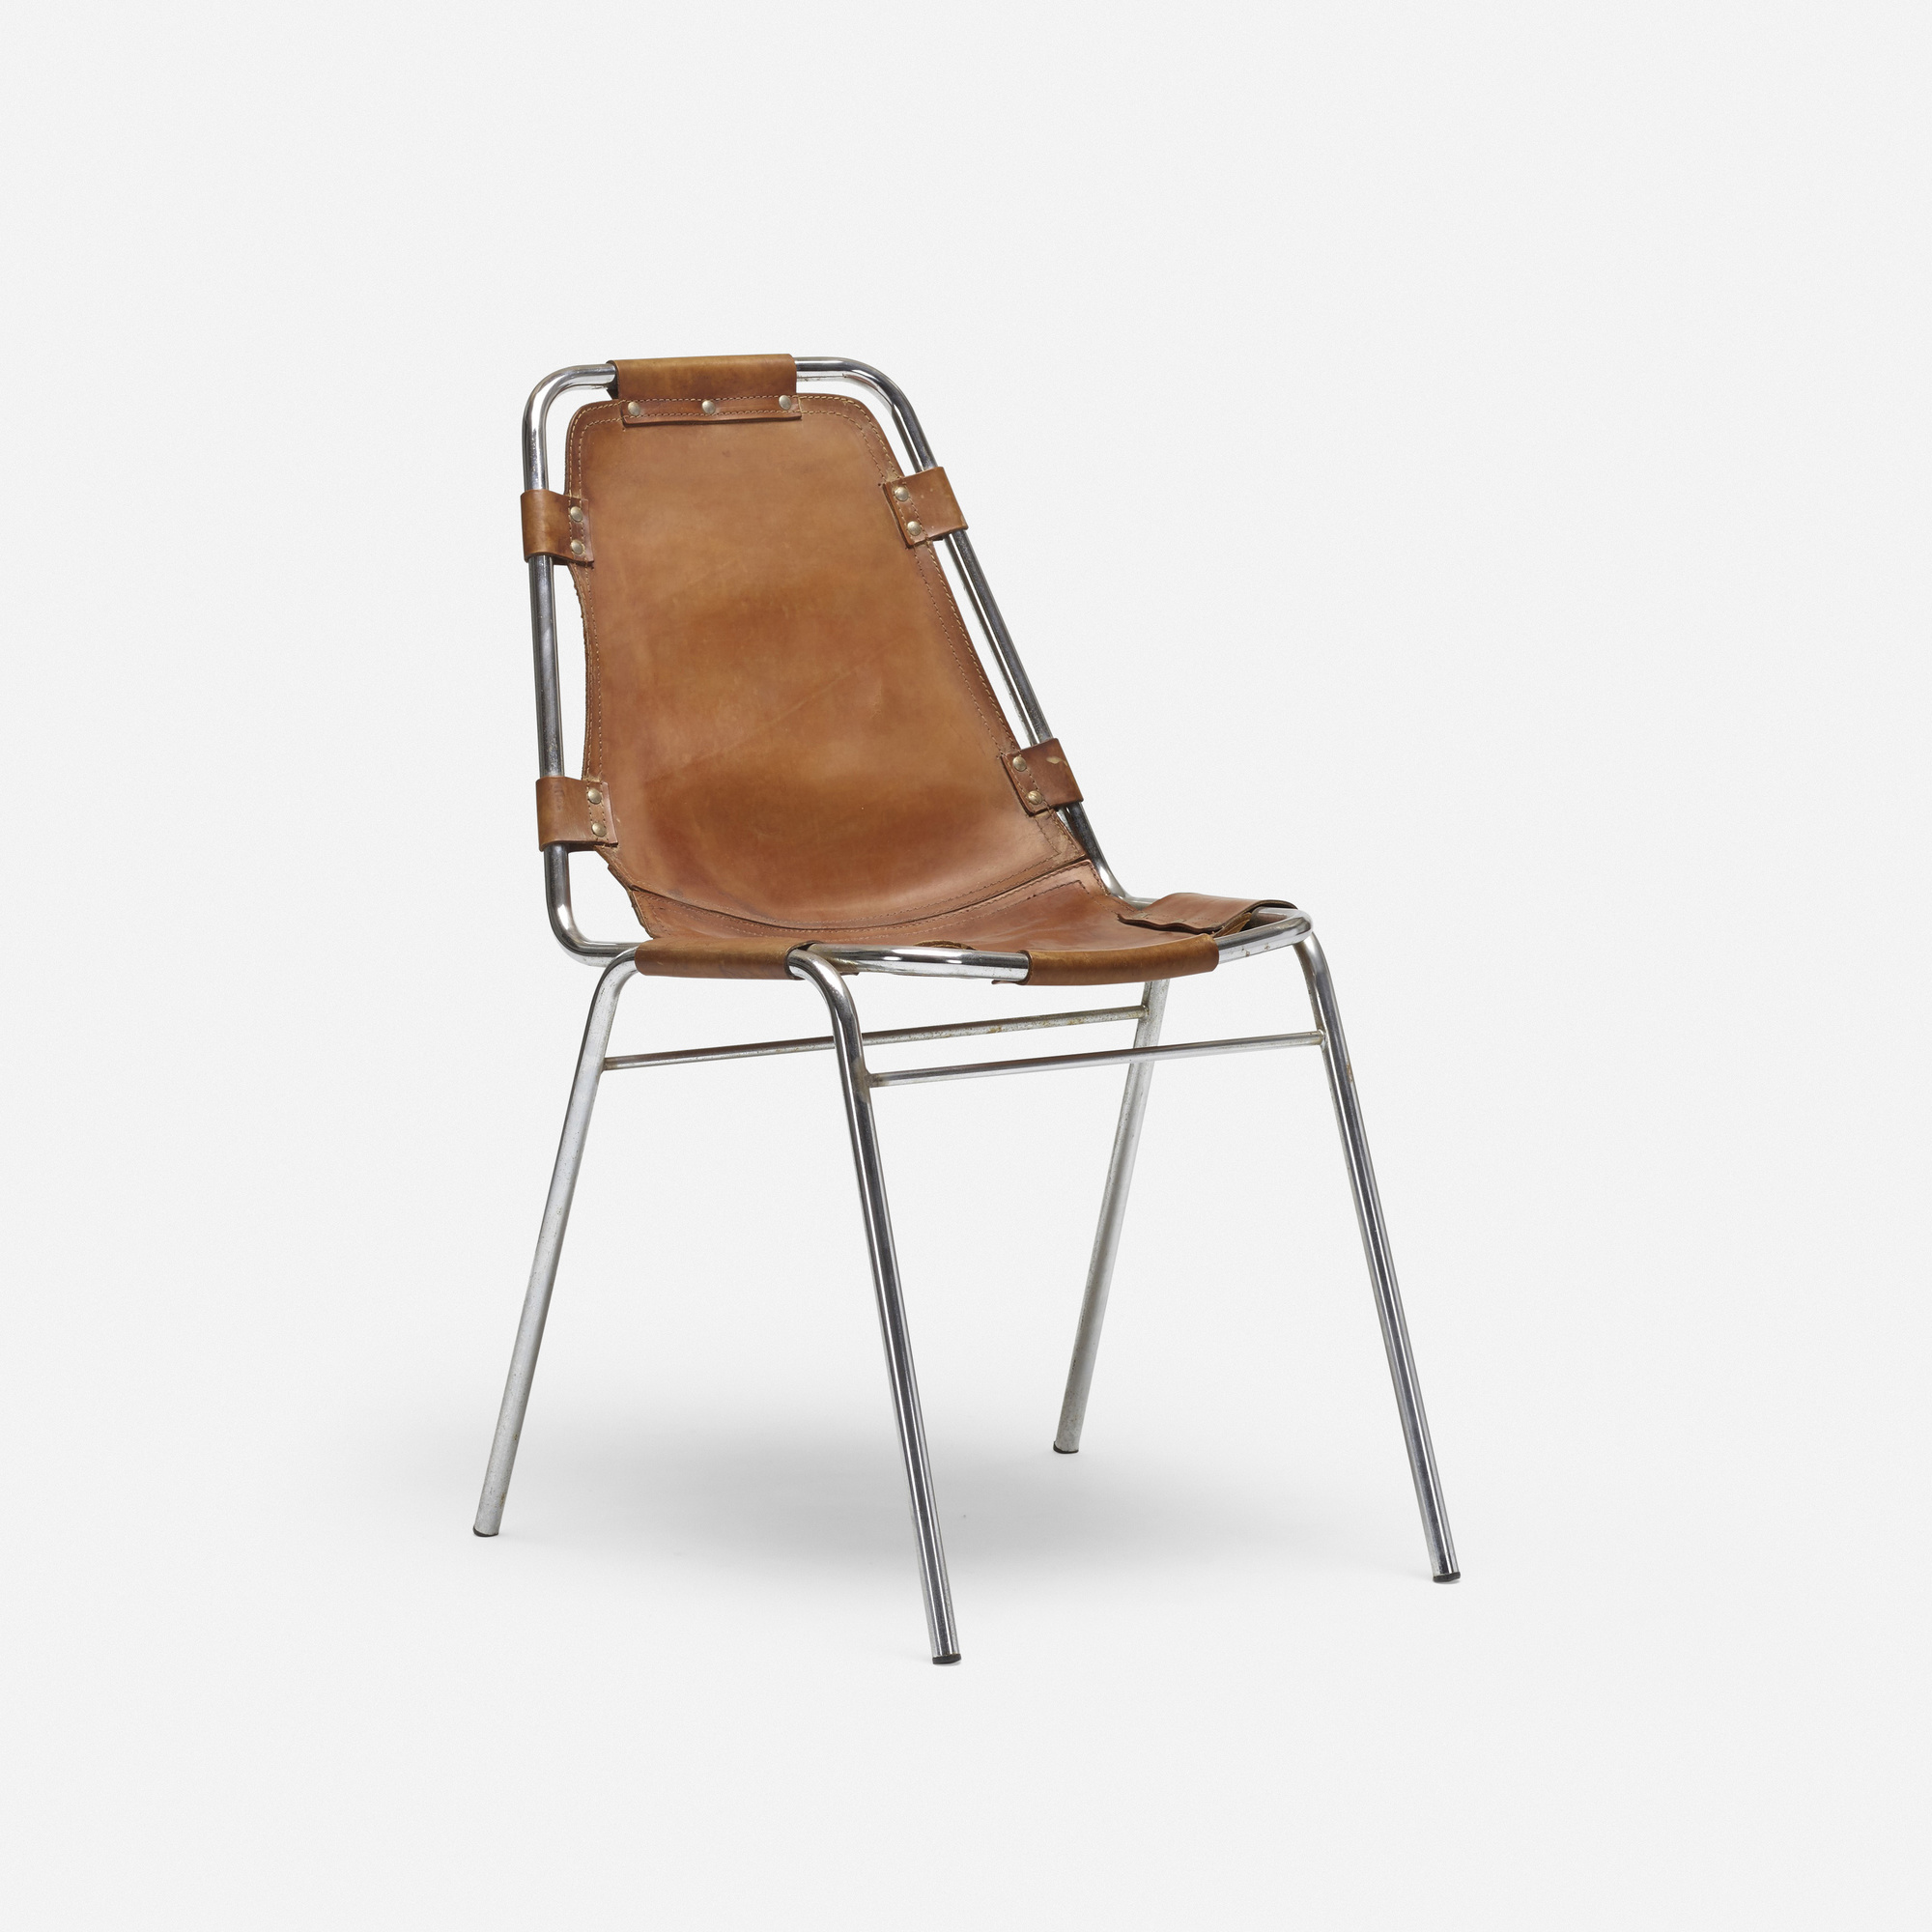 654: Charlotte Perriand / dining chair from Les Arcs (1 of 2)